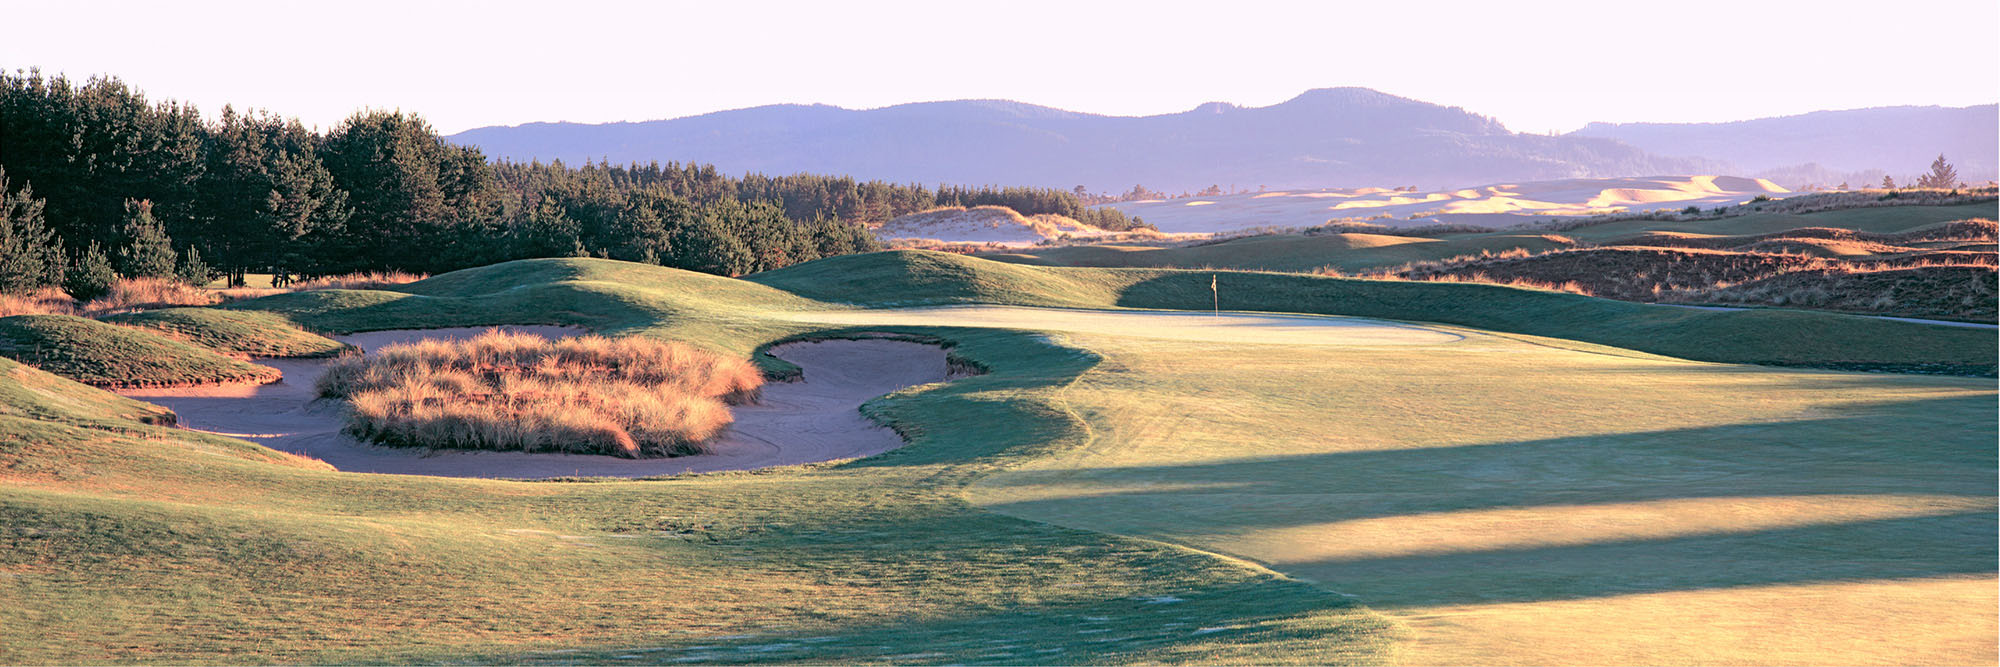 Golf Course Image - Sandpines No. 14